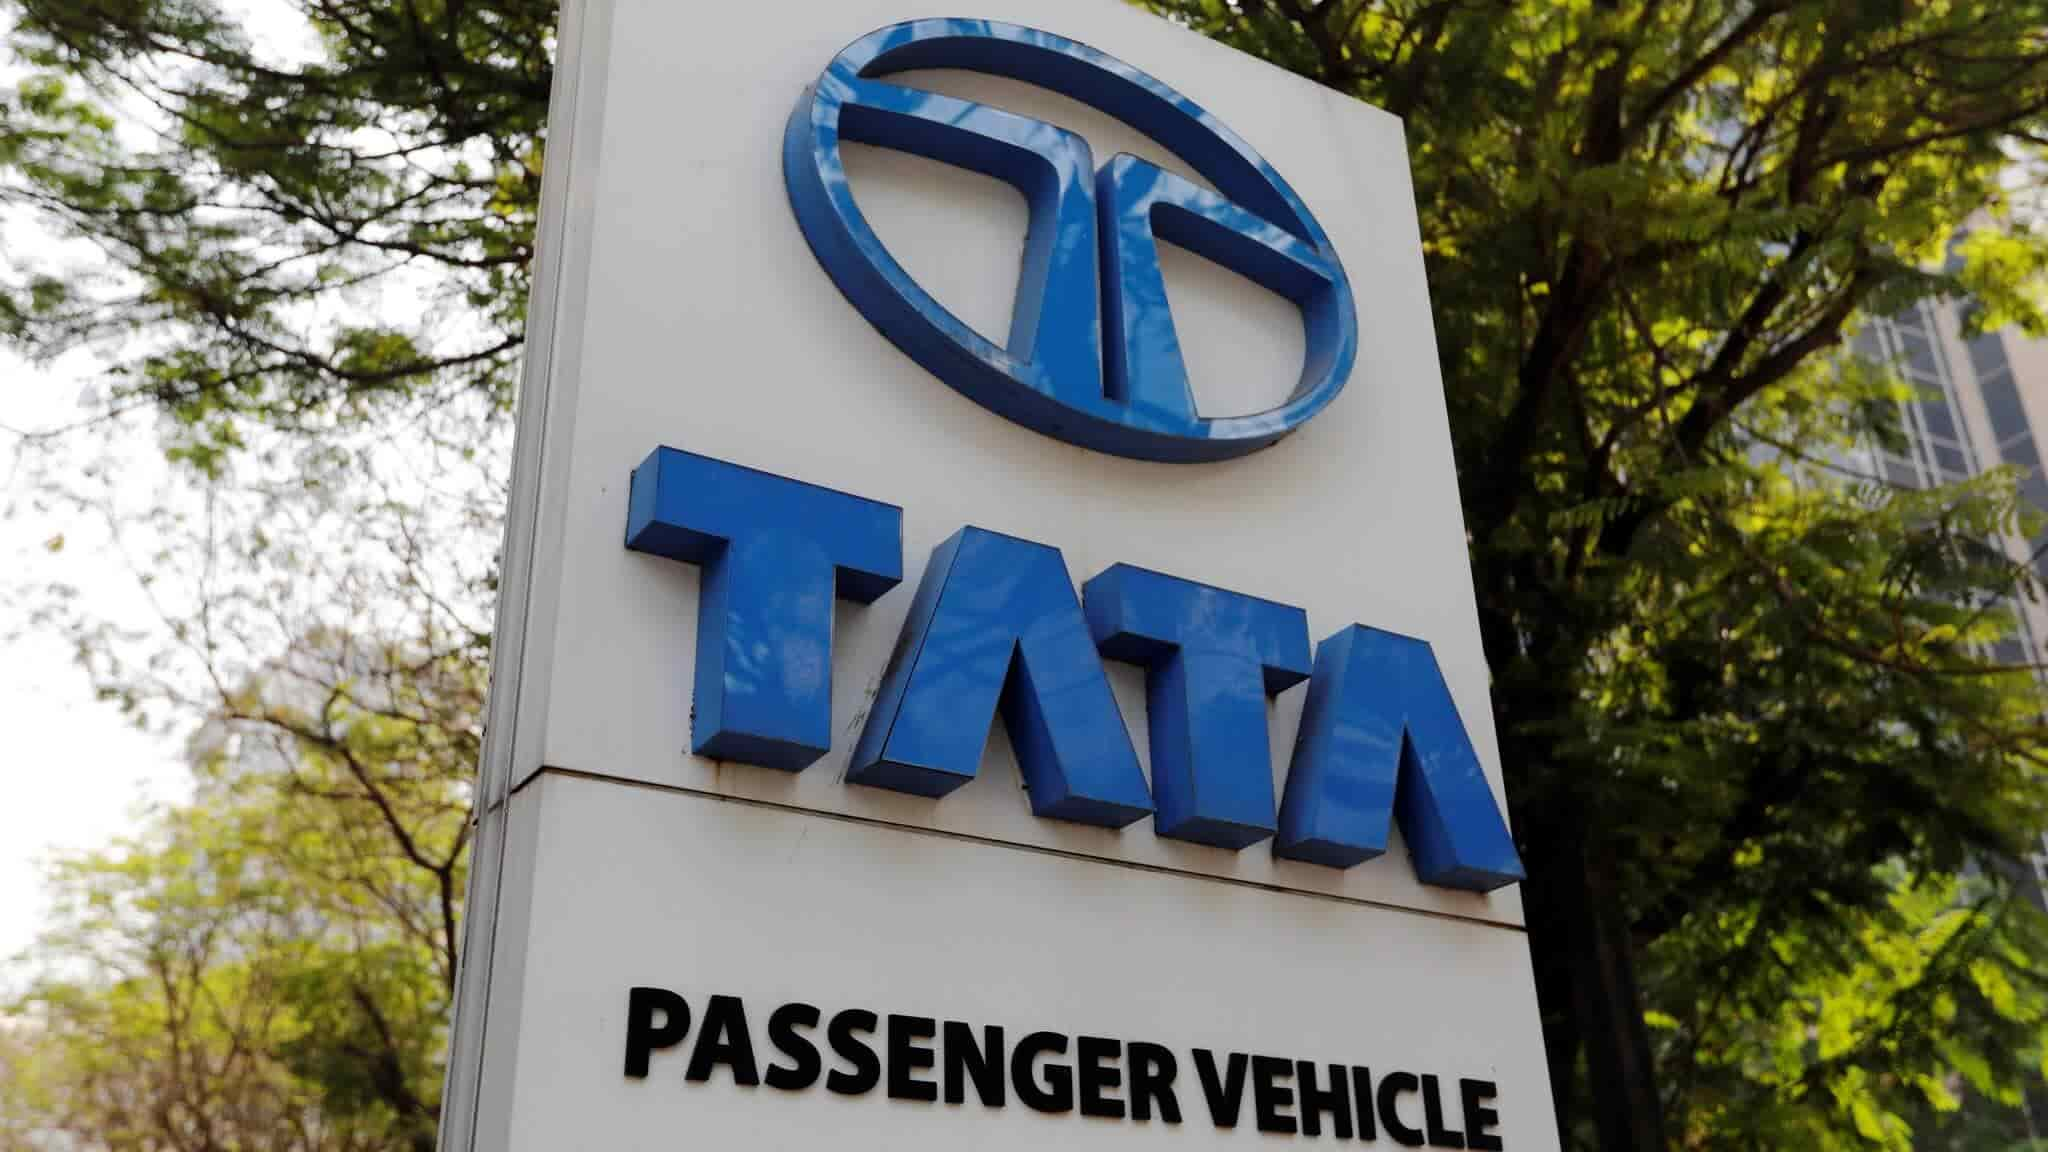 Tata Motors and Tata Motors Finance